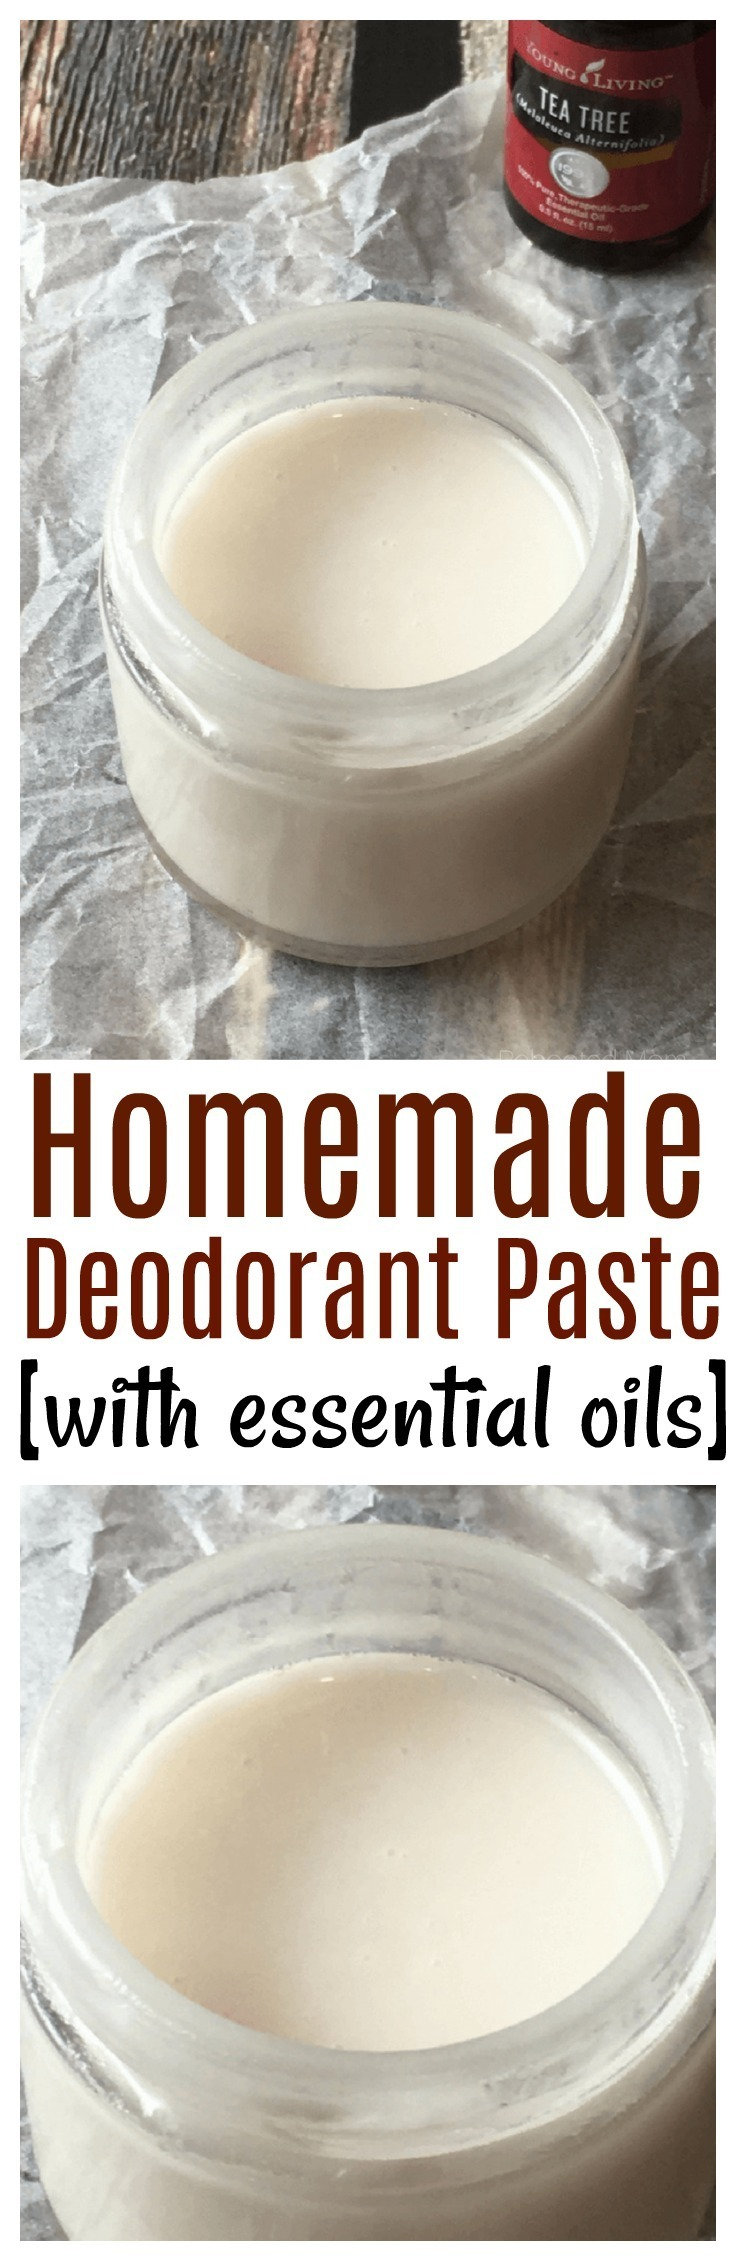 How to make homemade deodorant paste: This is a great way to kick your commercial deodorant to the curb in favor of a less harmful, skin loving product. #DIY #deodorant #essentialoils